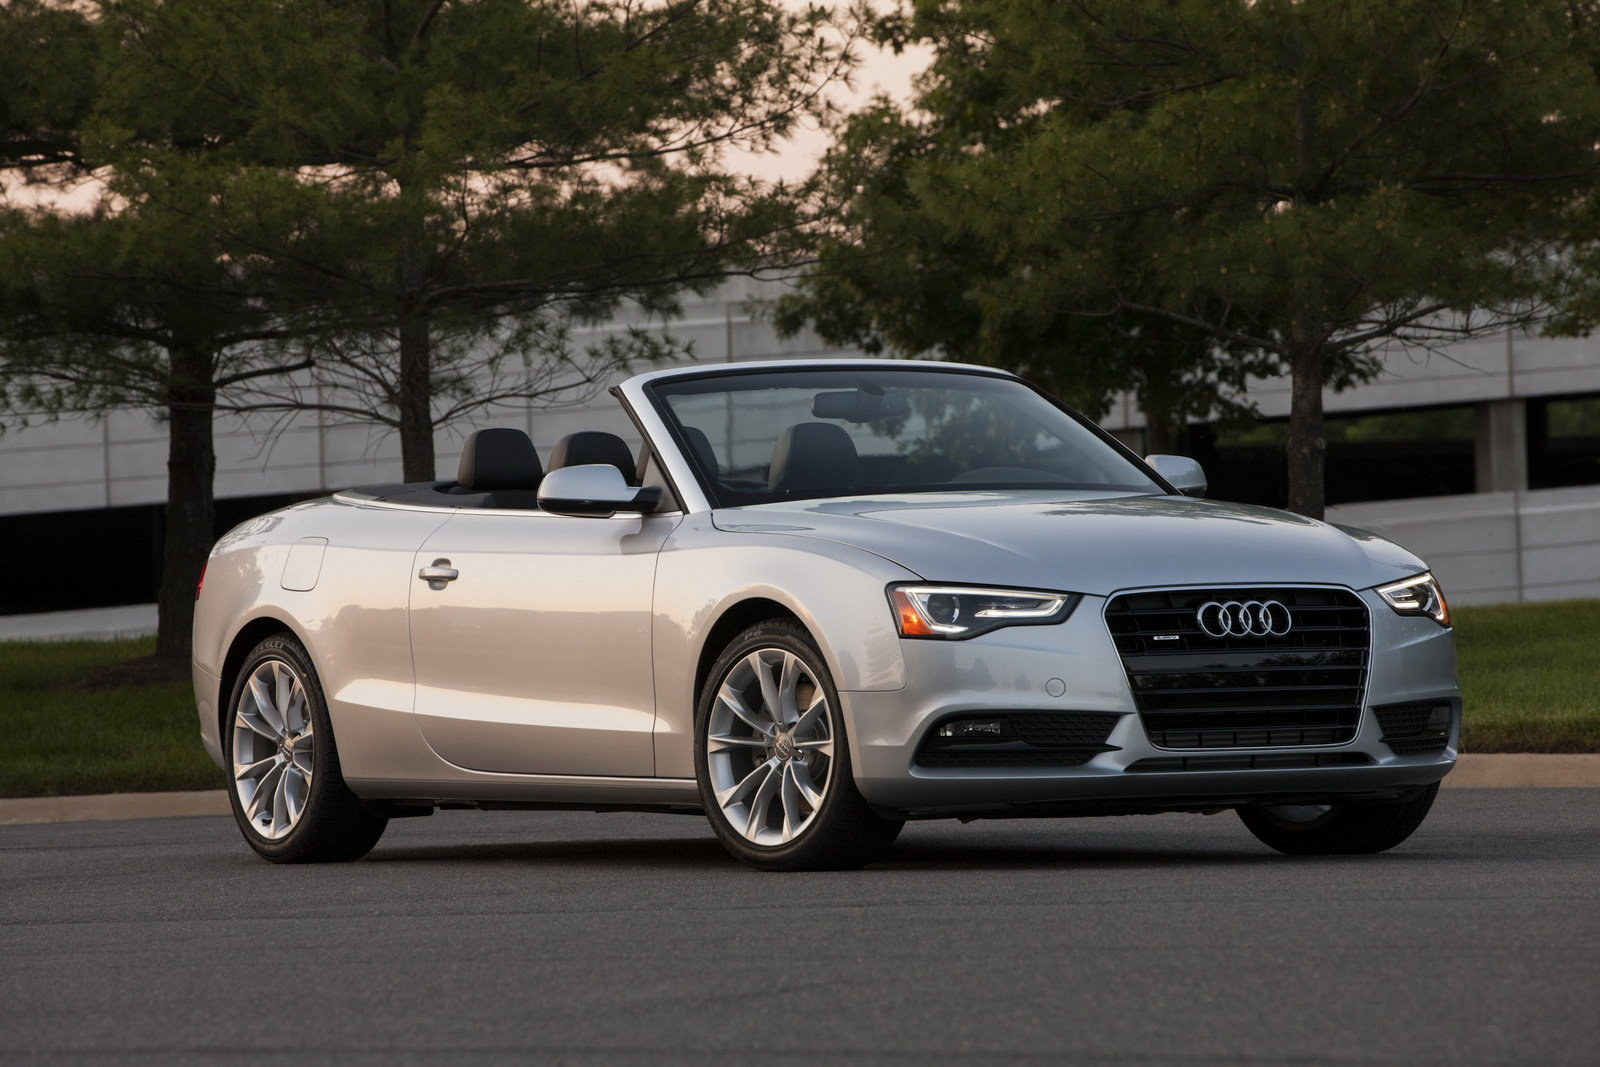 2014 audi a5 convertible review top speed. Black Bedroom Furniture Sets. Home Design Ideas